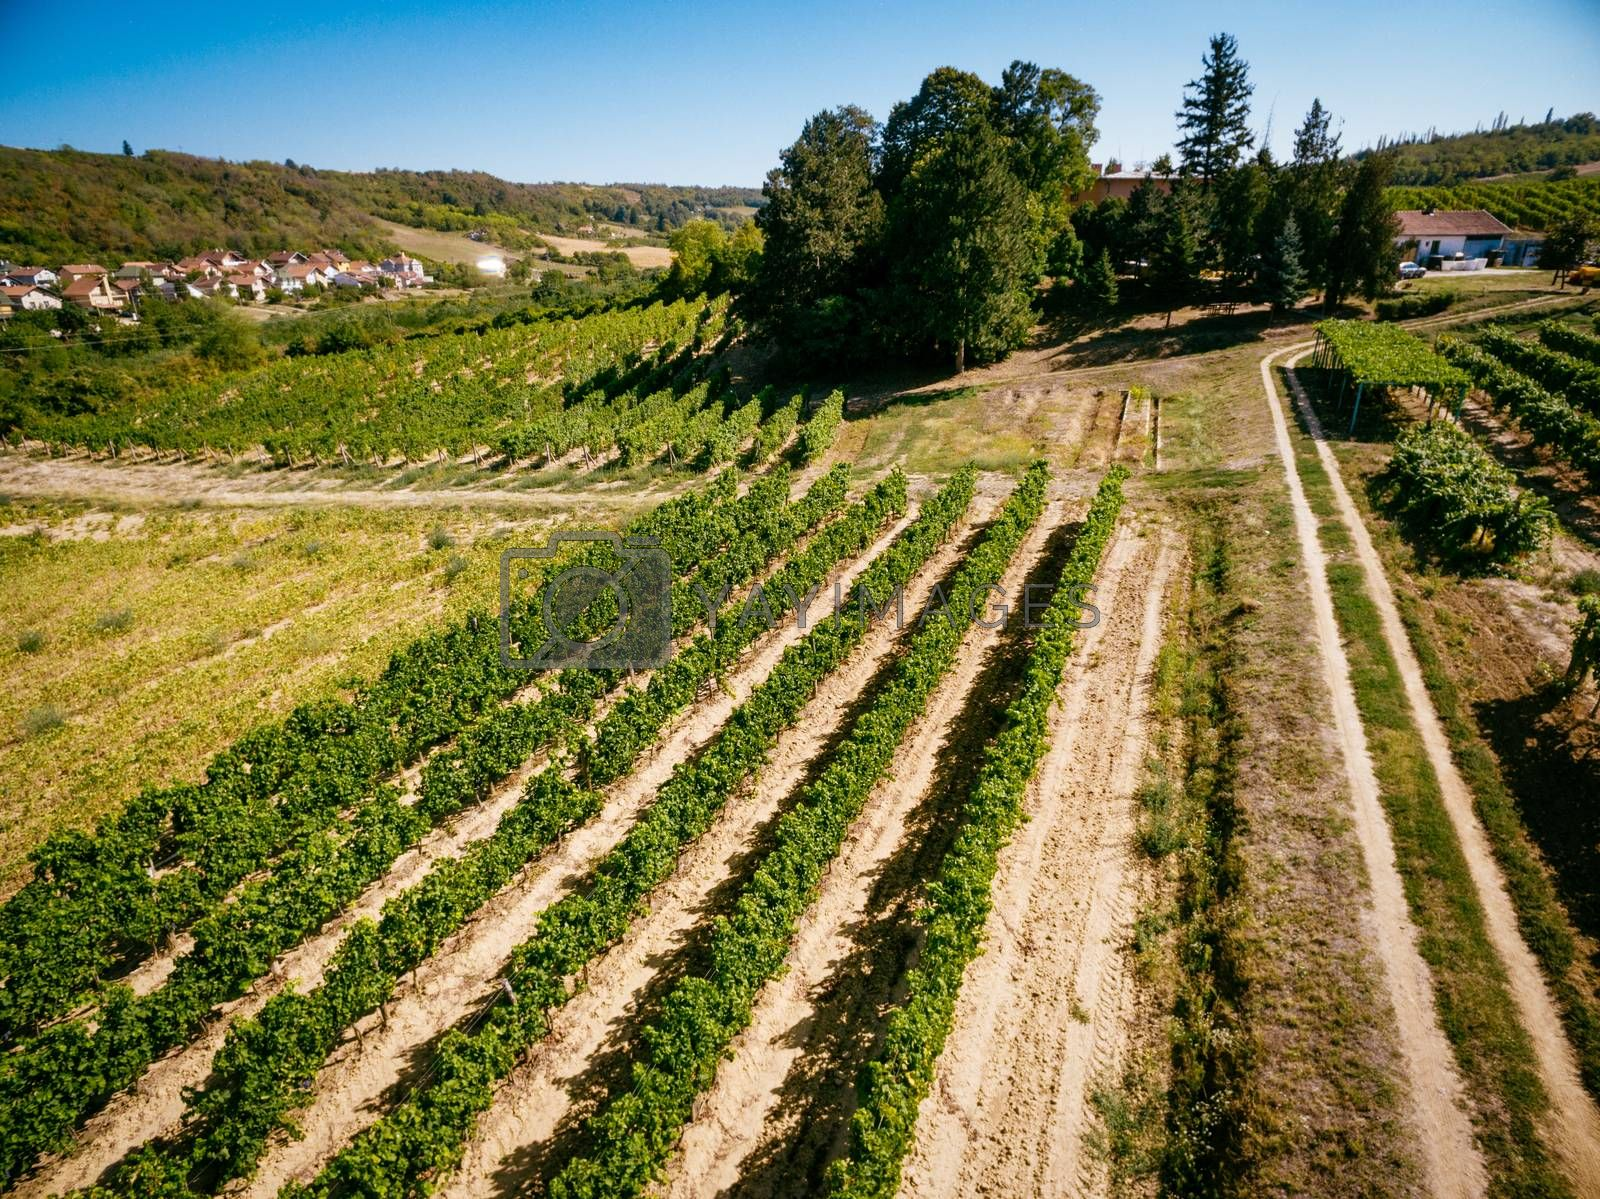 Scenic view of vineyard on sunny day.